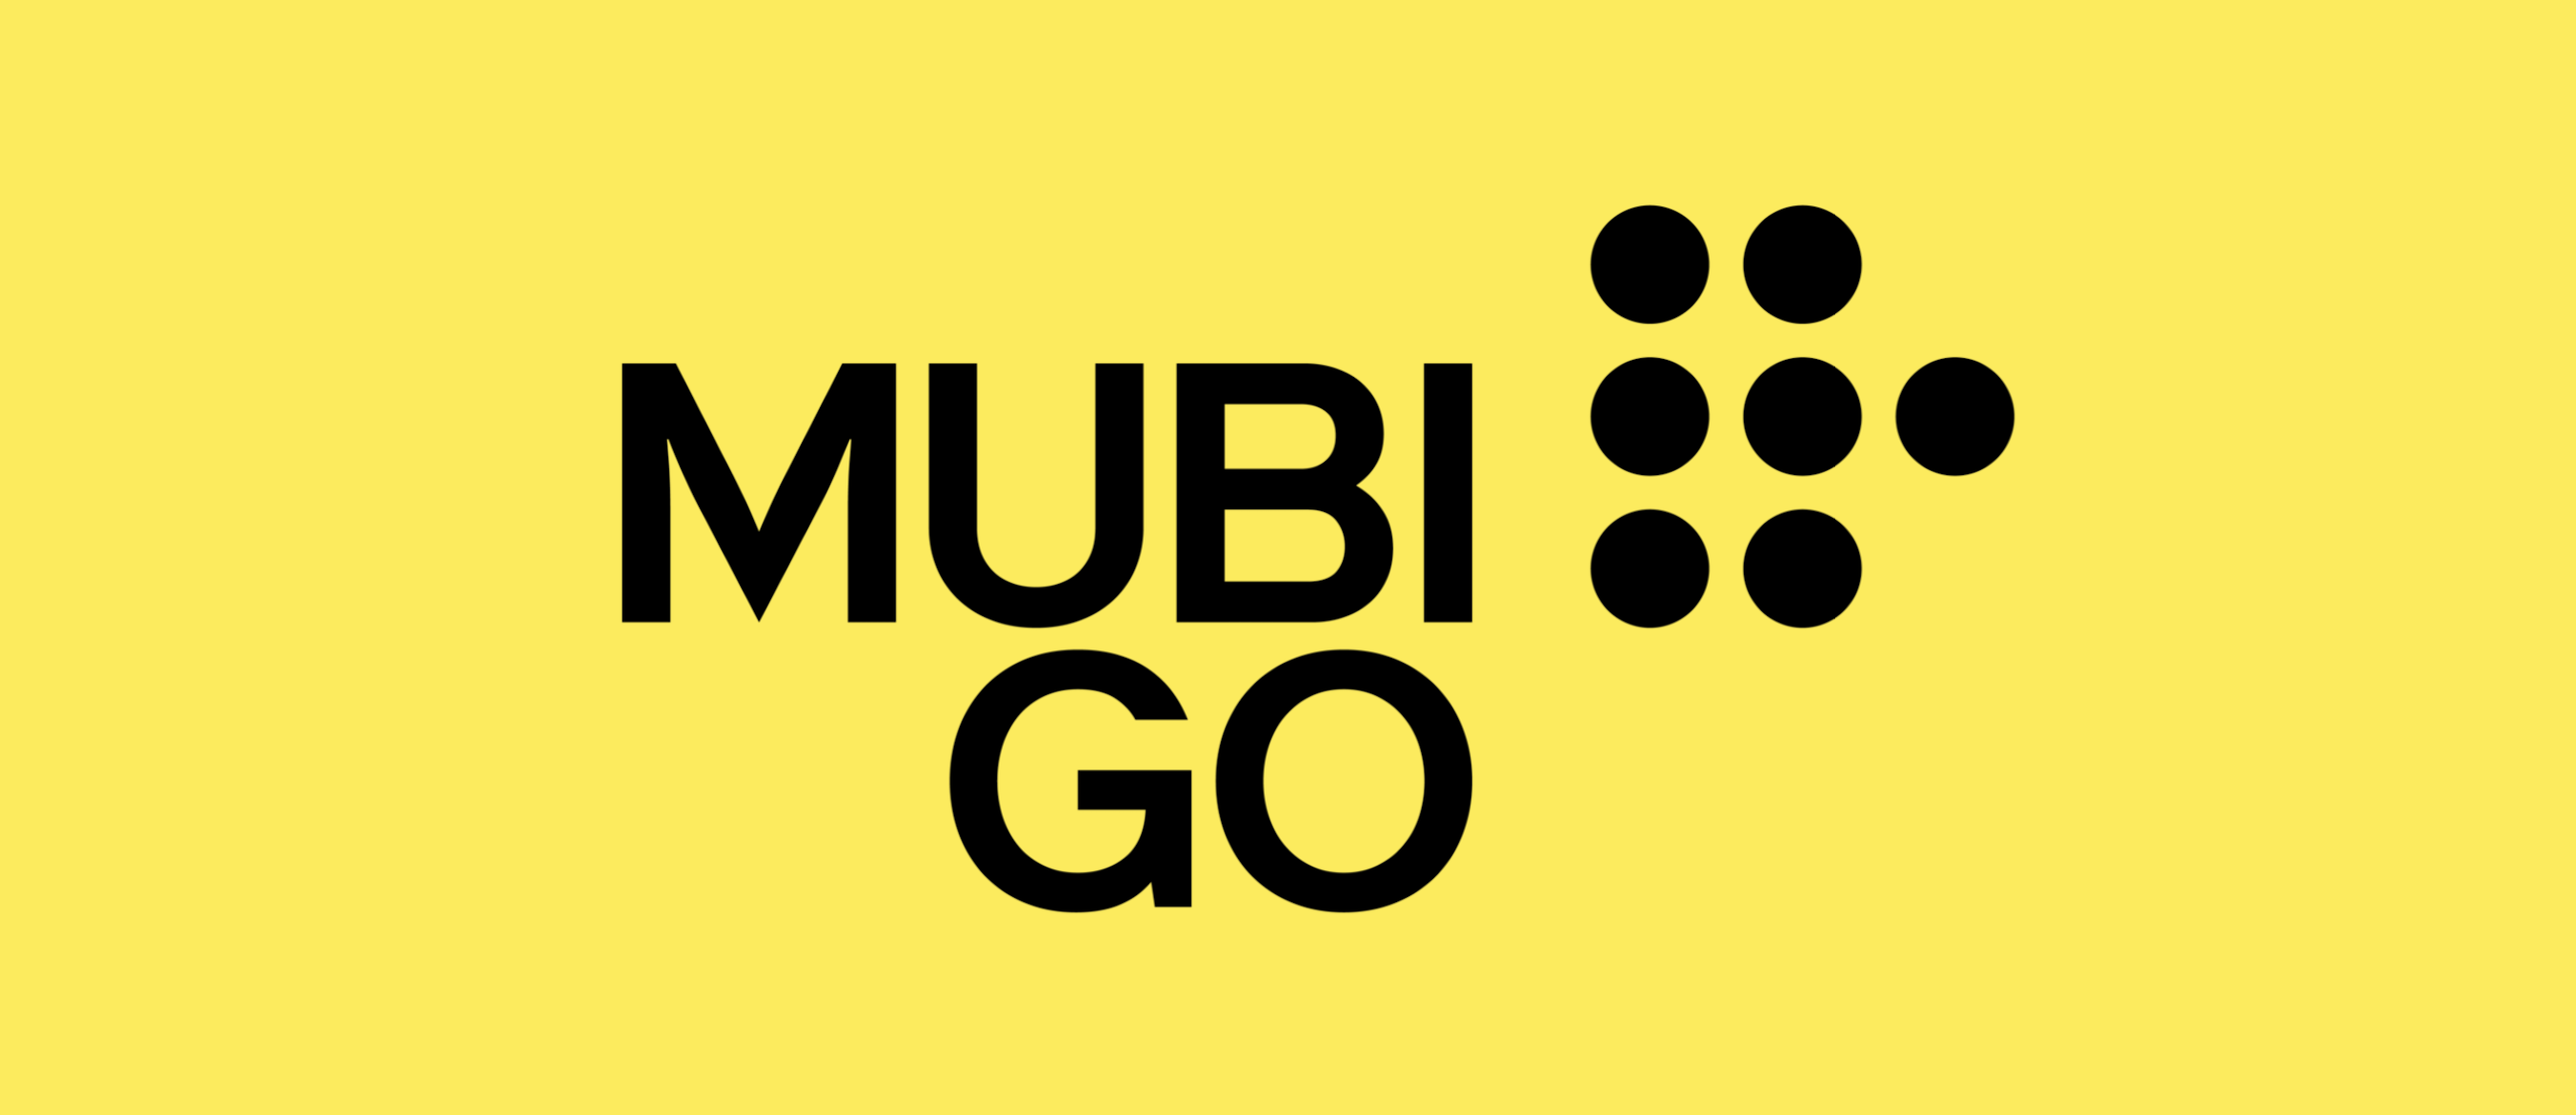 Streamer Mubi Launching Curated Movie-A-Week Cinema Pass, Mubi Go, For U.S. Members Starting In NYC This Month